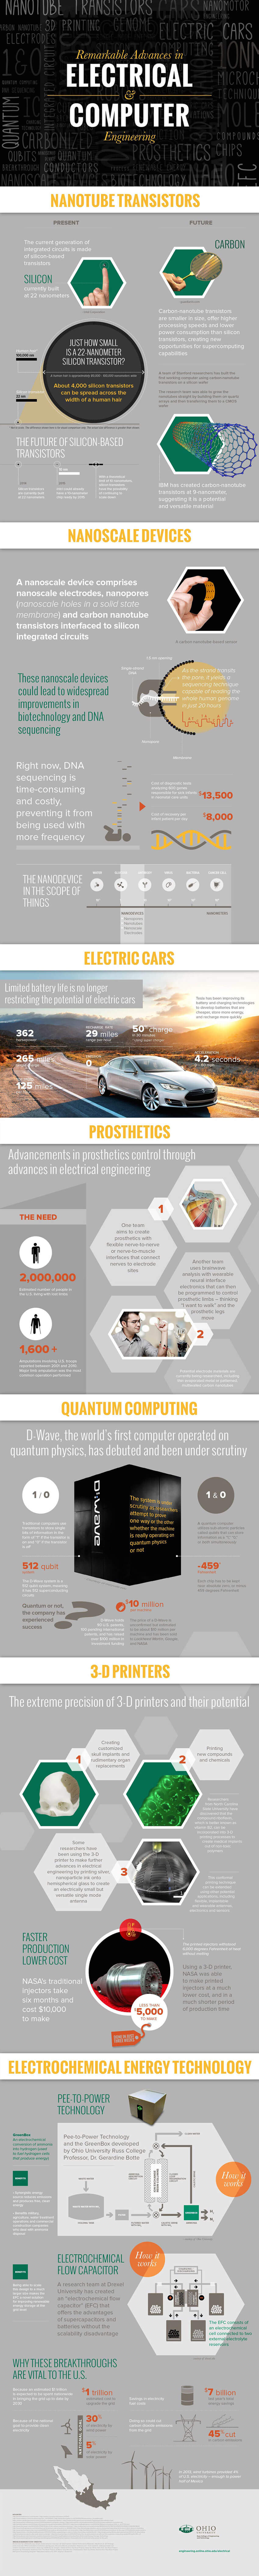 Remarkable Advances in Computer Engineering infographic